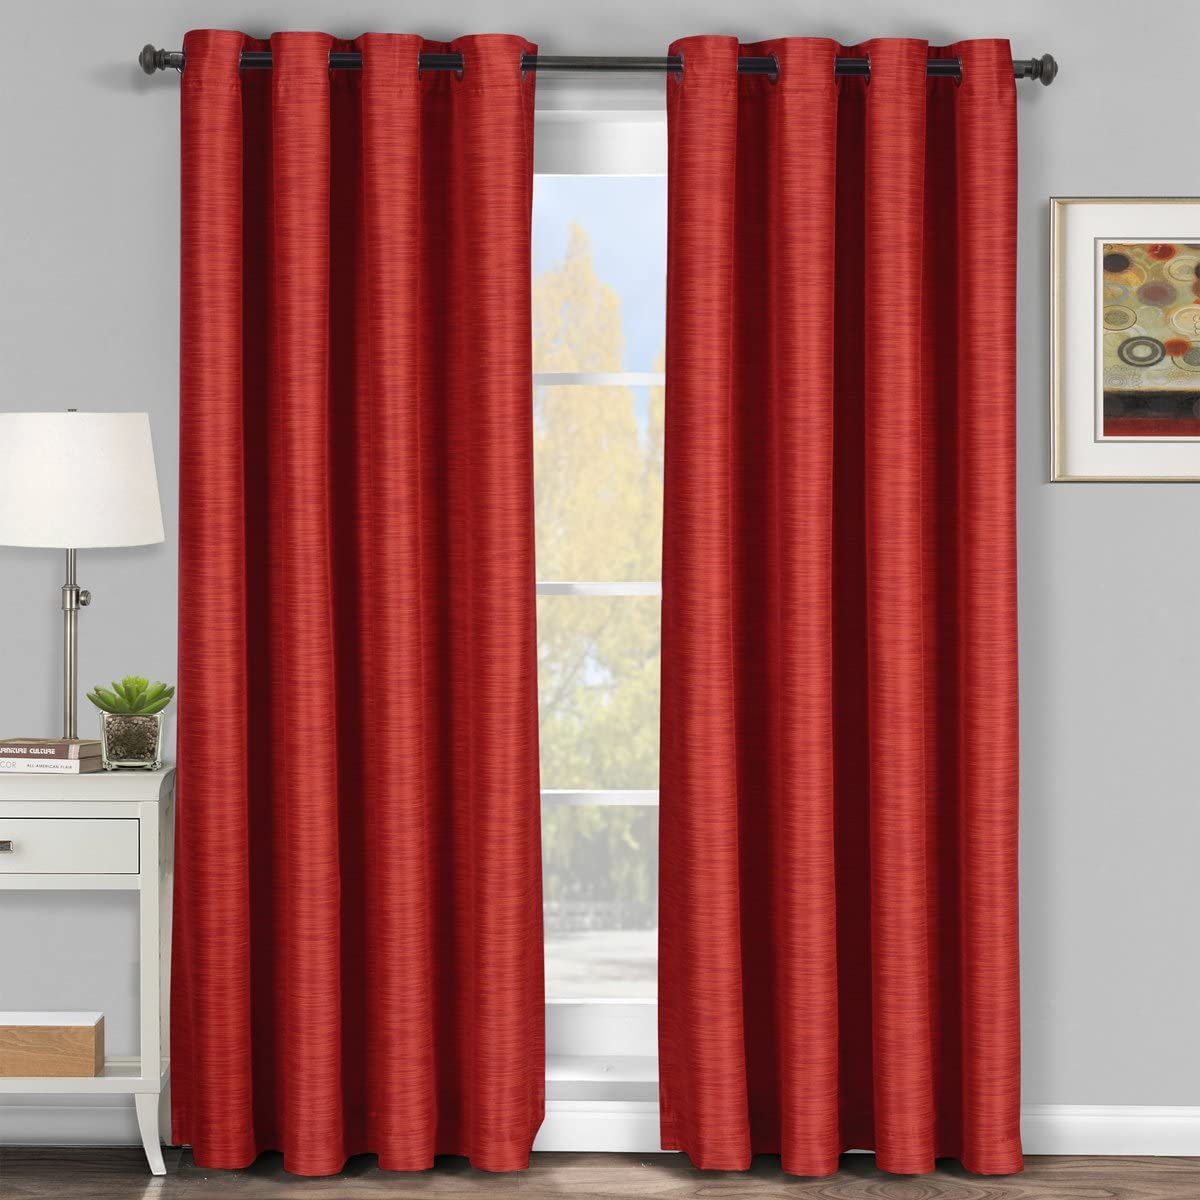 Pair of Two Elegant and Contemporary Galleria Tonal Stripes Top Grommet Blackout Thermal Insulated Panels, Triple-Pass Foam Back Layer, Red, Set of Two 54 by 108 Panels 108 by 108 Pair